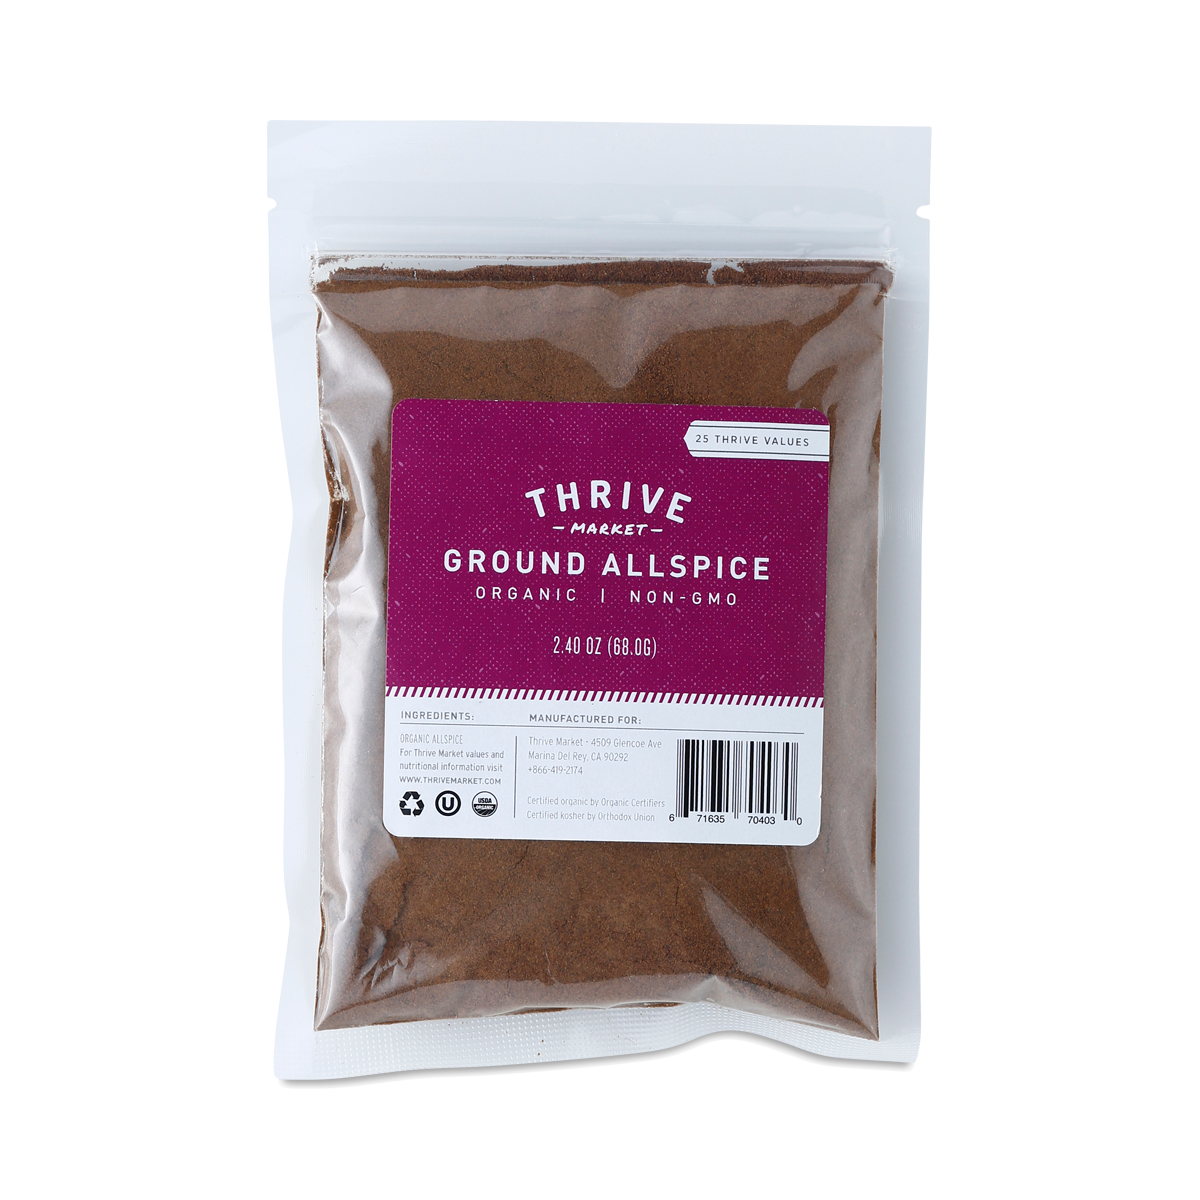 Thrive Market Organic Ground Allspice 2.4 oz pouch